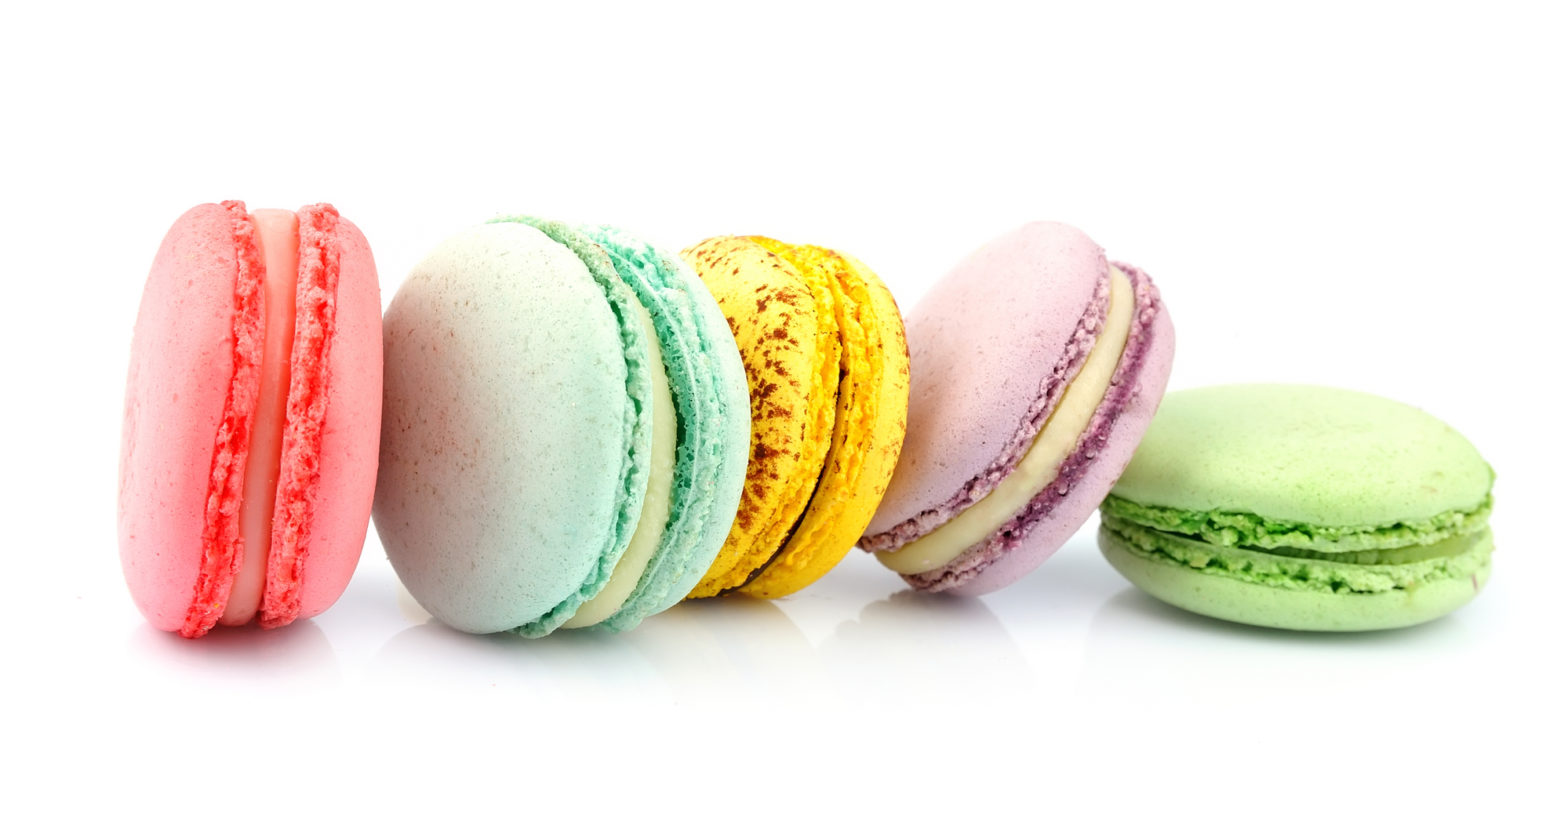 Come fare i macarons